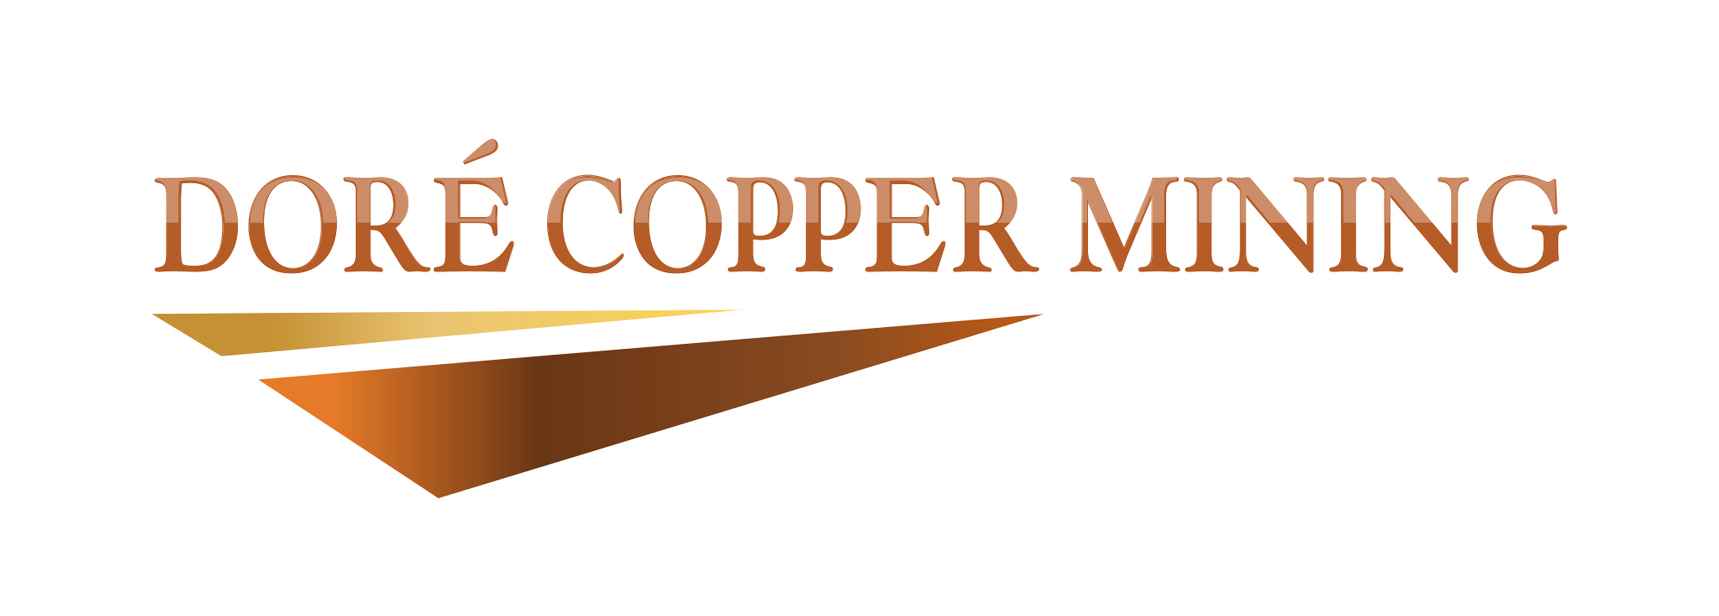 Doré Copper Announces Initial Drilling Plan to Follow Up onHigh-Grade Gold and Copper Mineralization